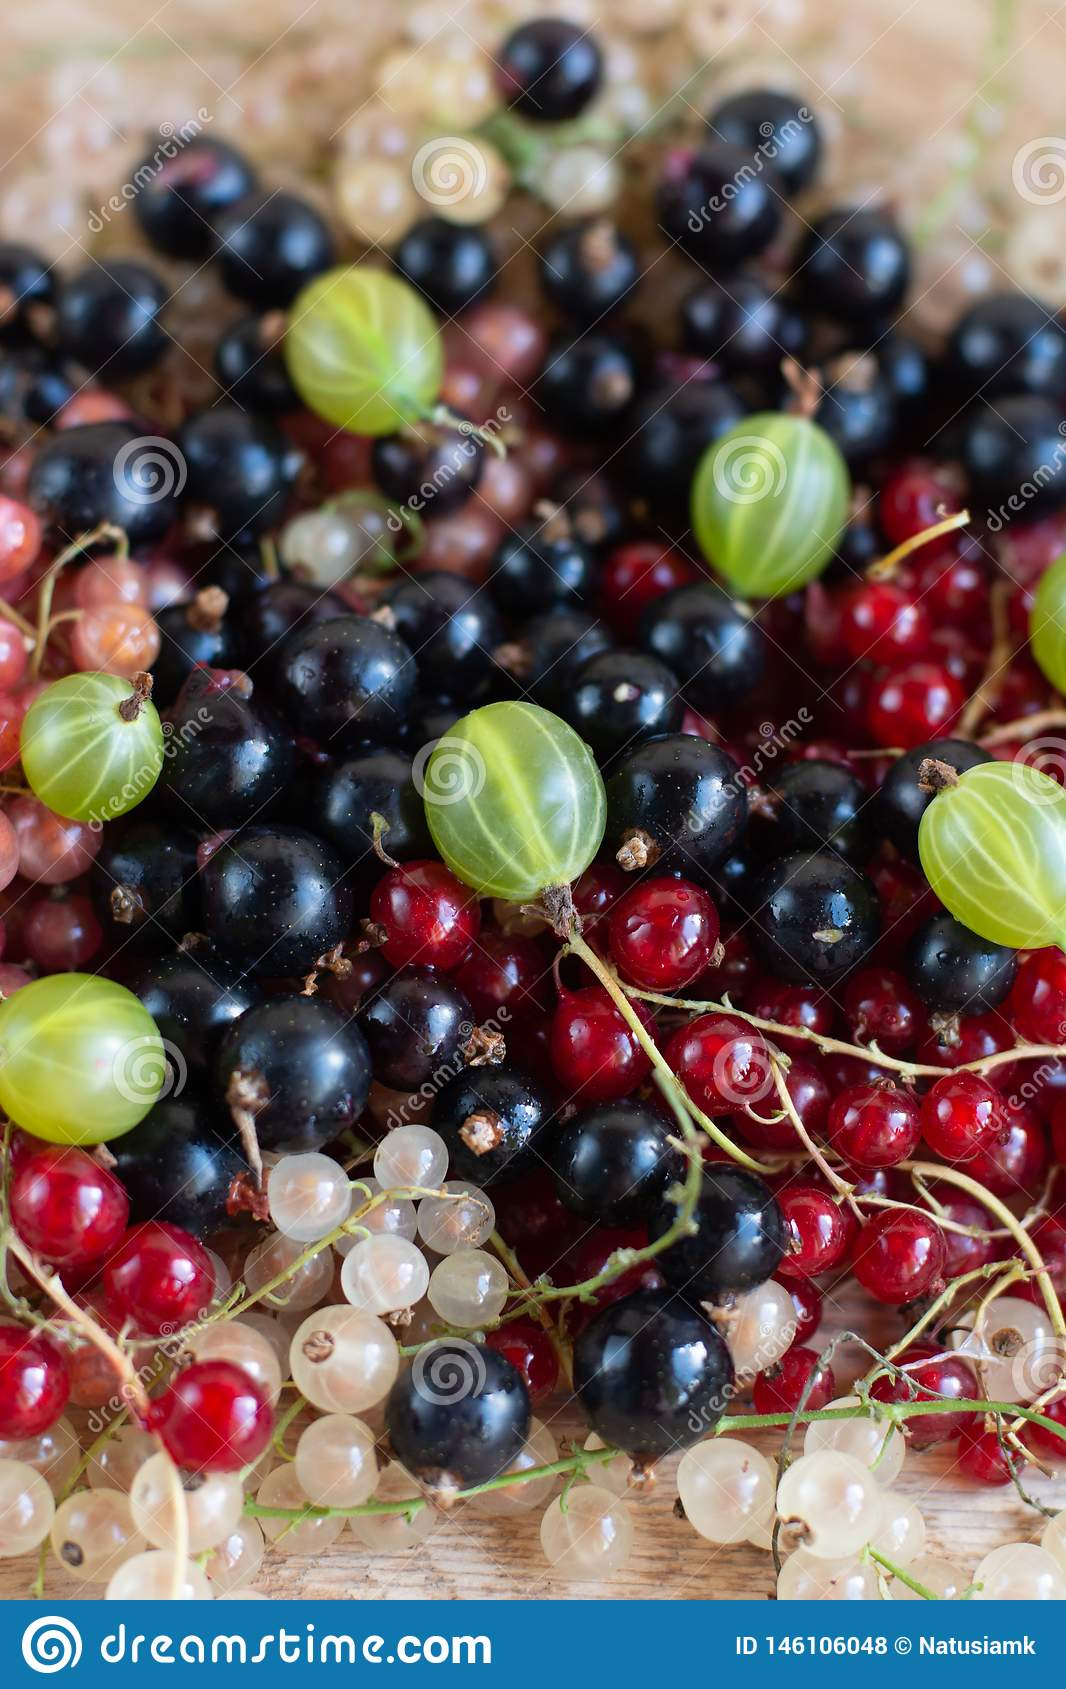 Vitamins. Summer berries. Red currant background. Close up, selective focus. Harvest Concept